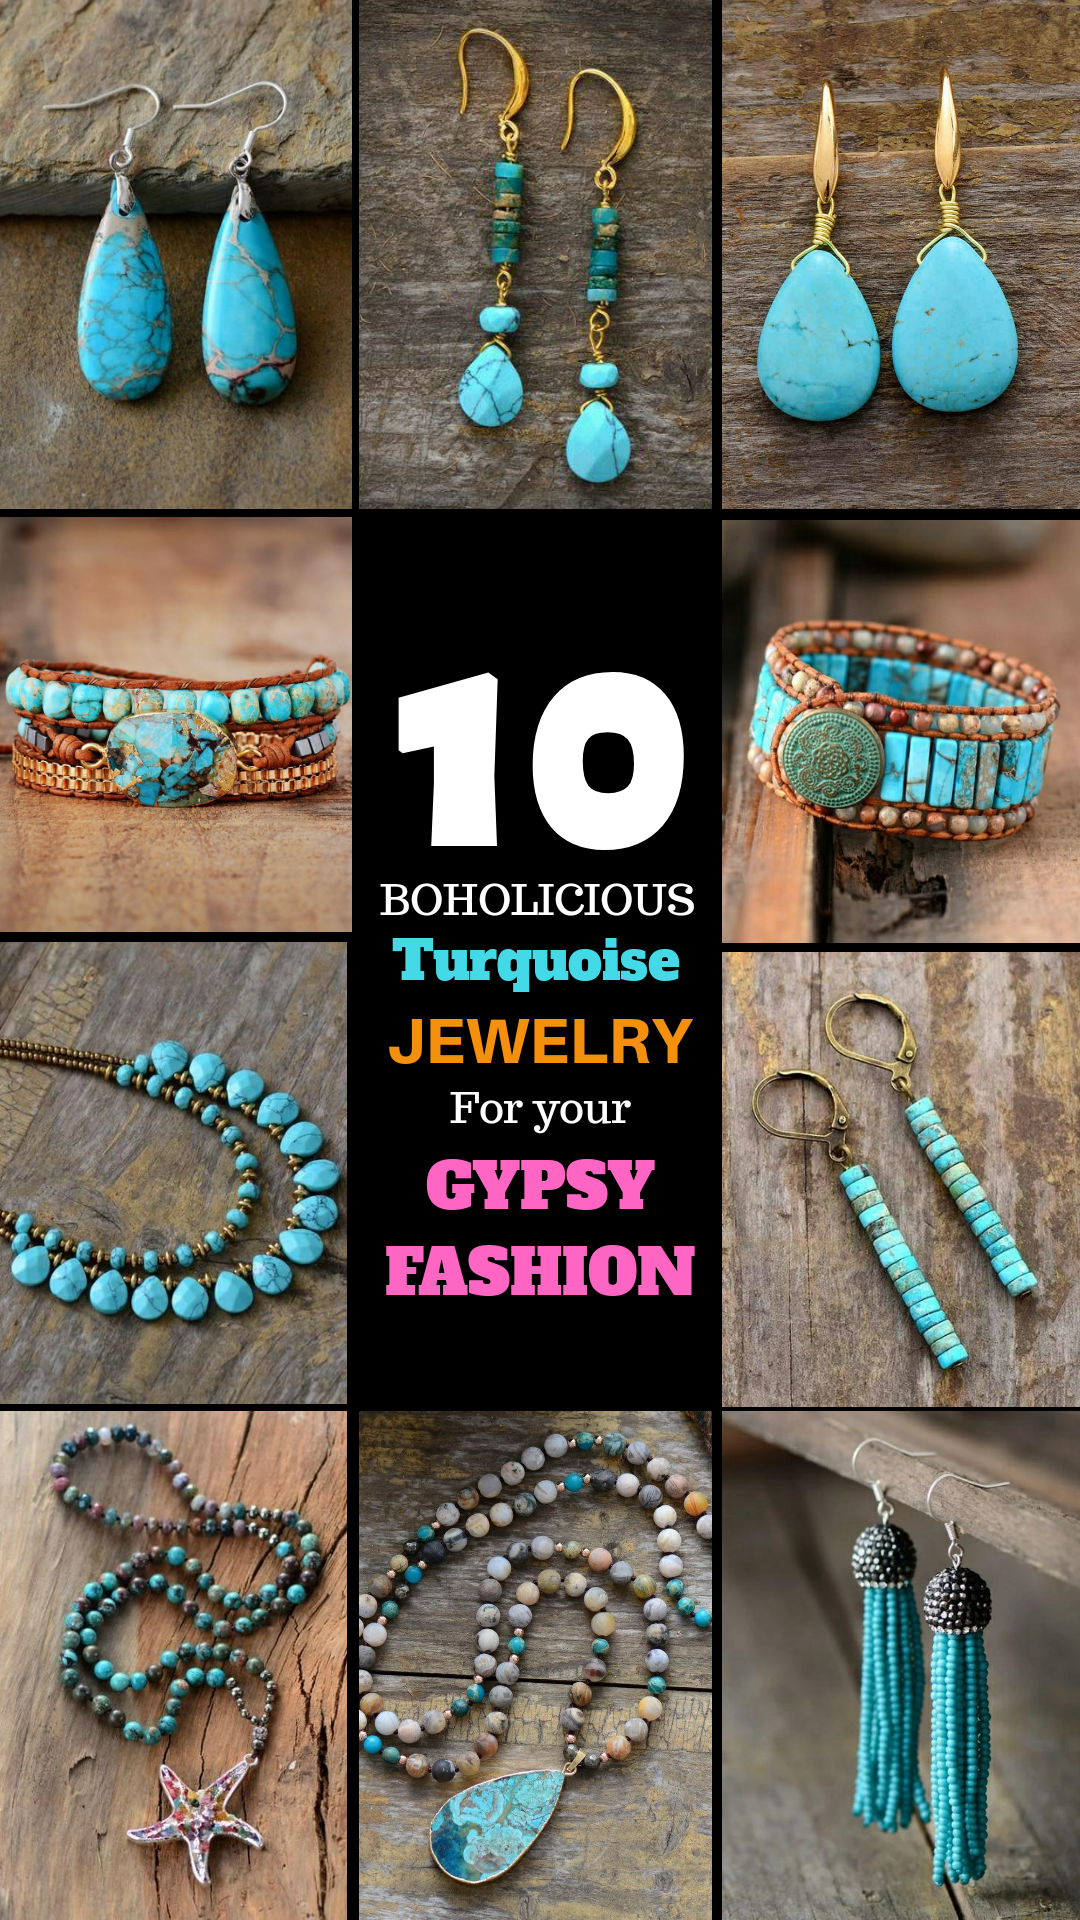 Turquoise Water Sky The Stone And Its Meaning Turquoise Jewelry Turquoise Jewelry